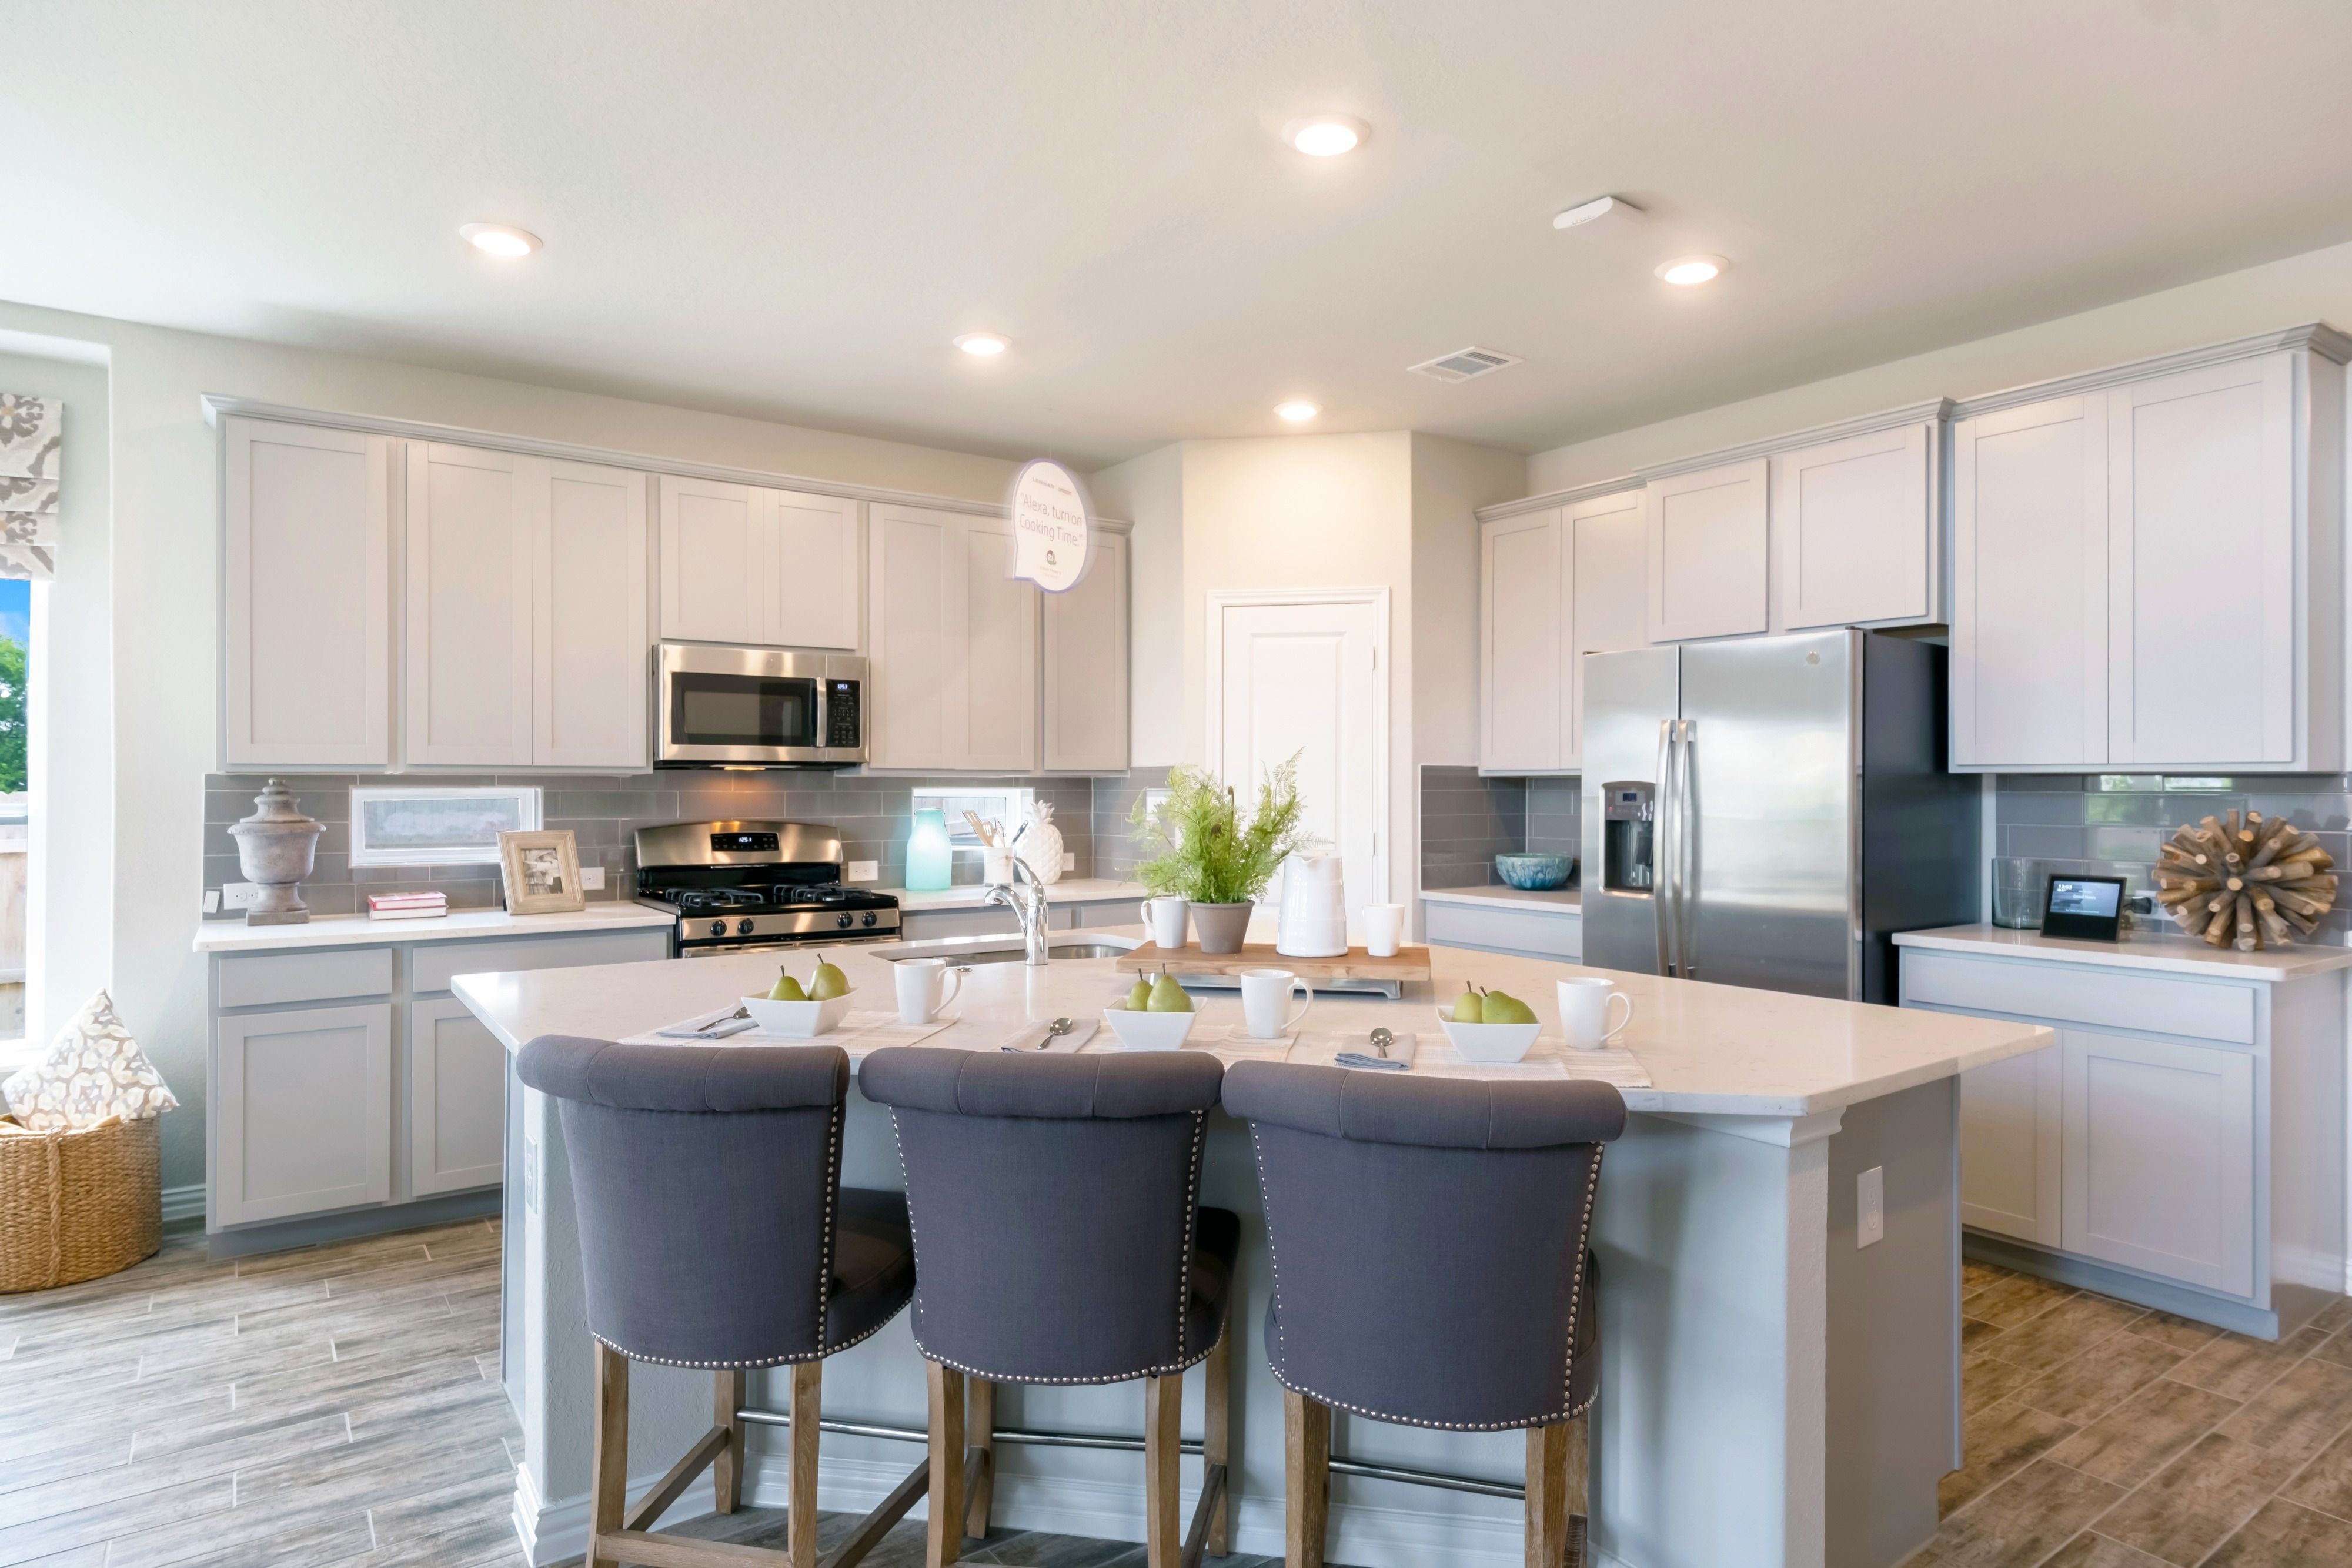 Kitchen Design New Home New Style Kitchen Inspirations New Home Communities New Homes